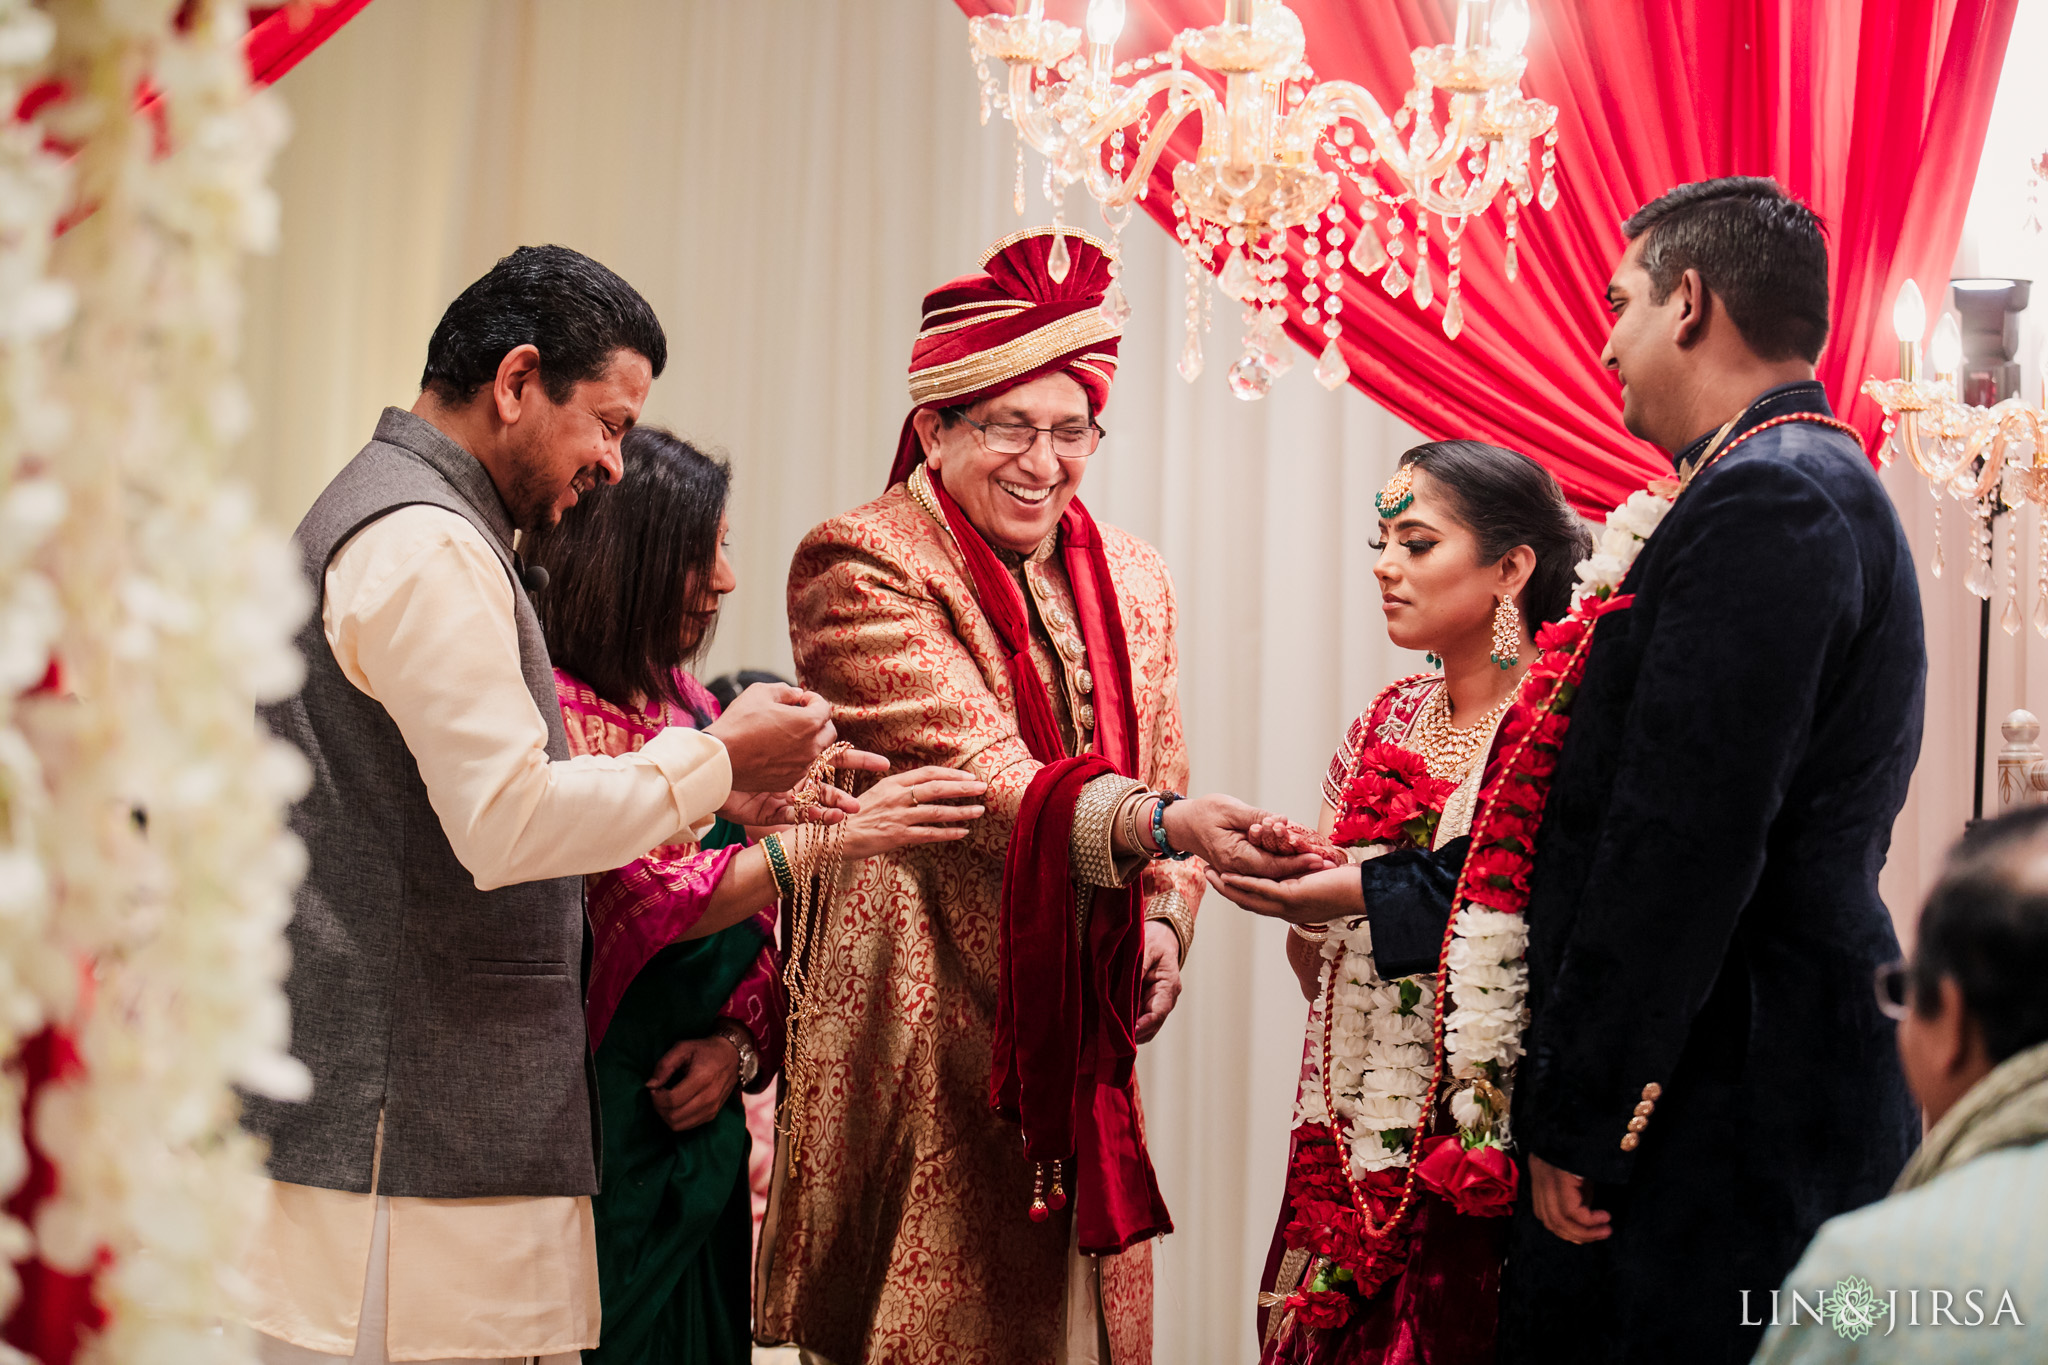 026 marriott santa clara indian wedding hindu ceremony photography